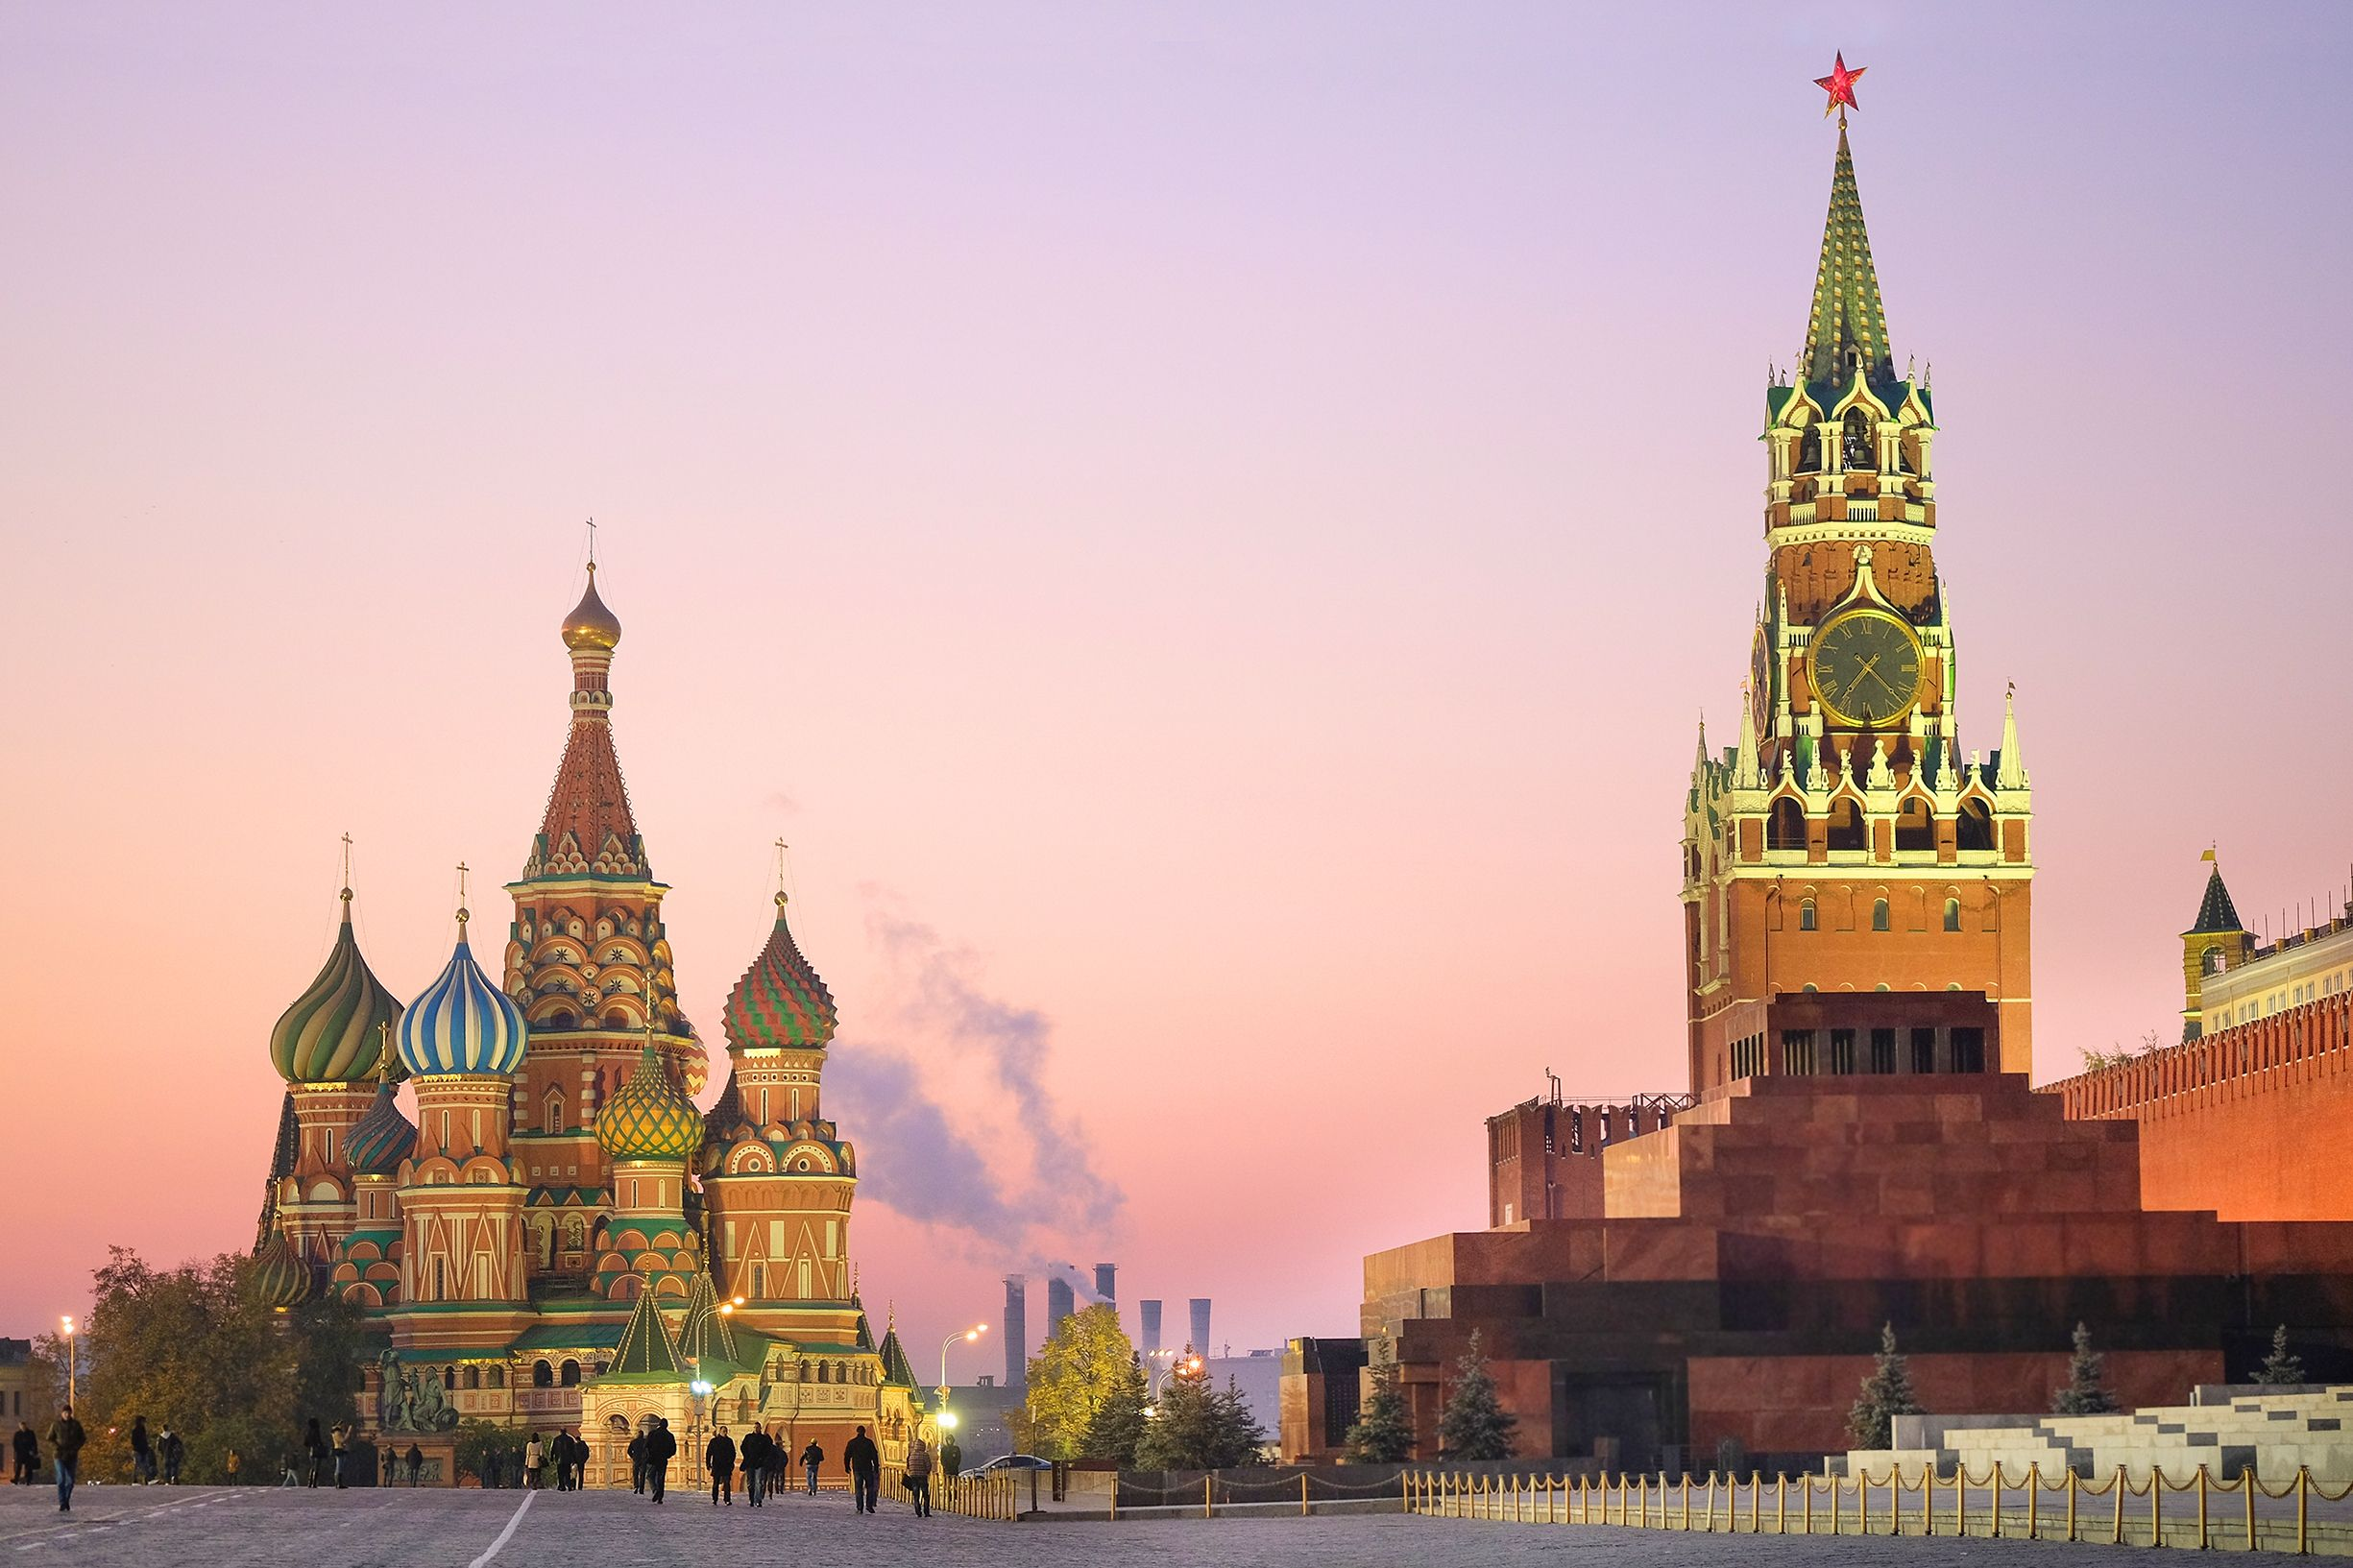 Krasnaya Ploshad Eng Red Square Moscow Russia Toexplorerussia Sightseeing Russia Moscow Redsquare